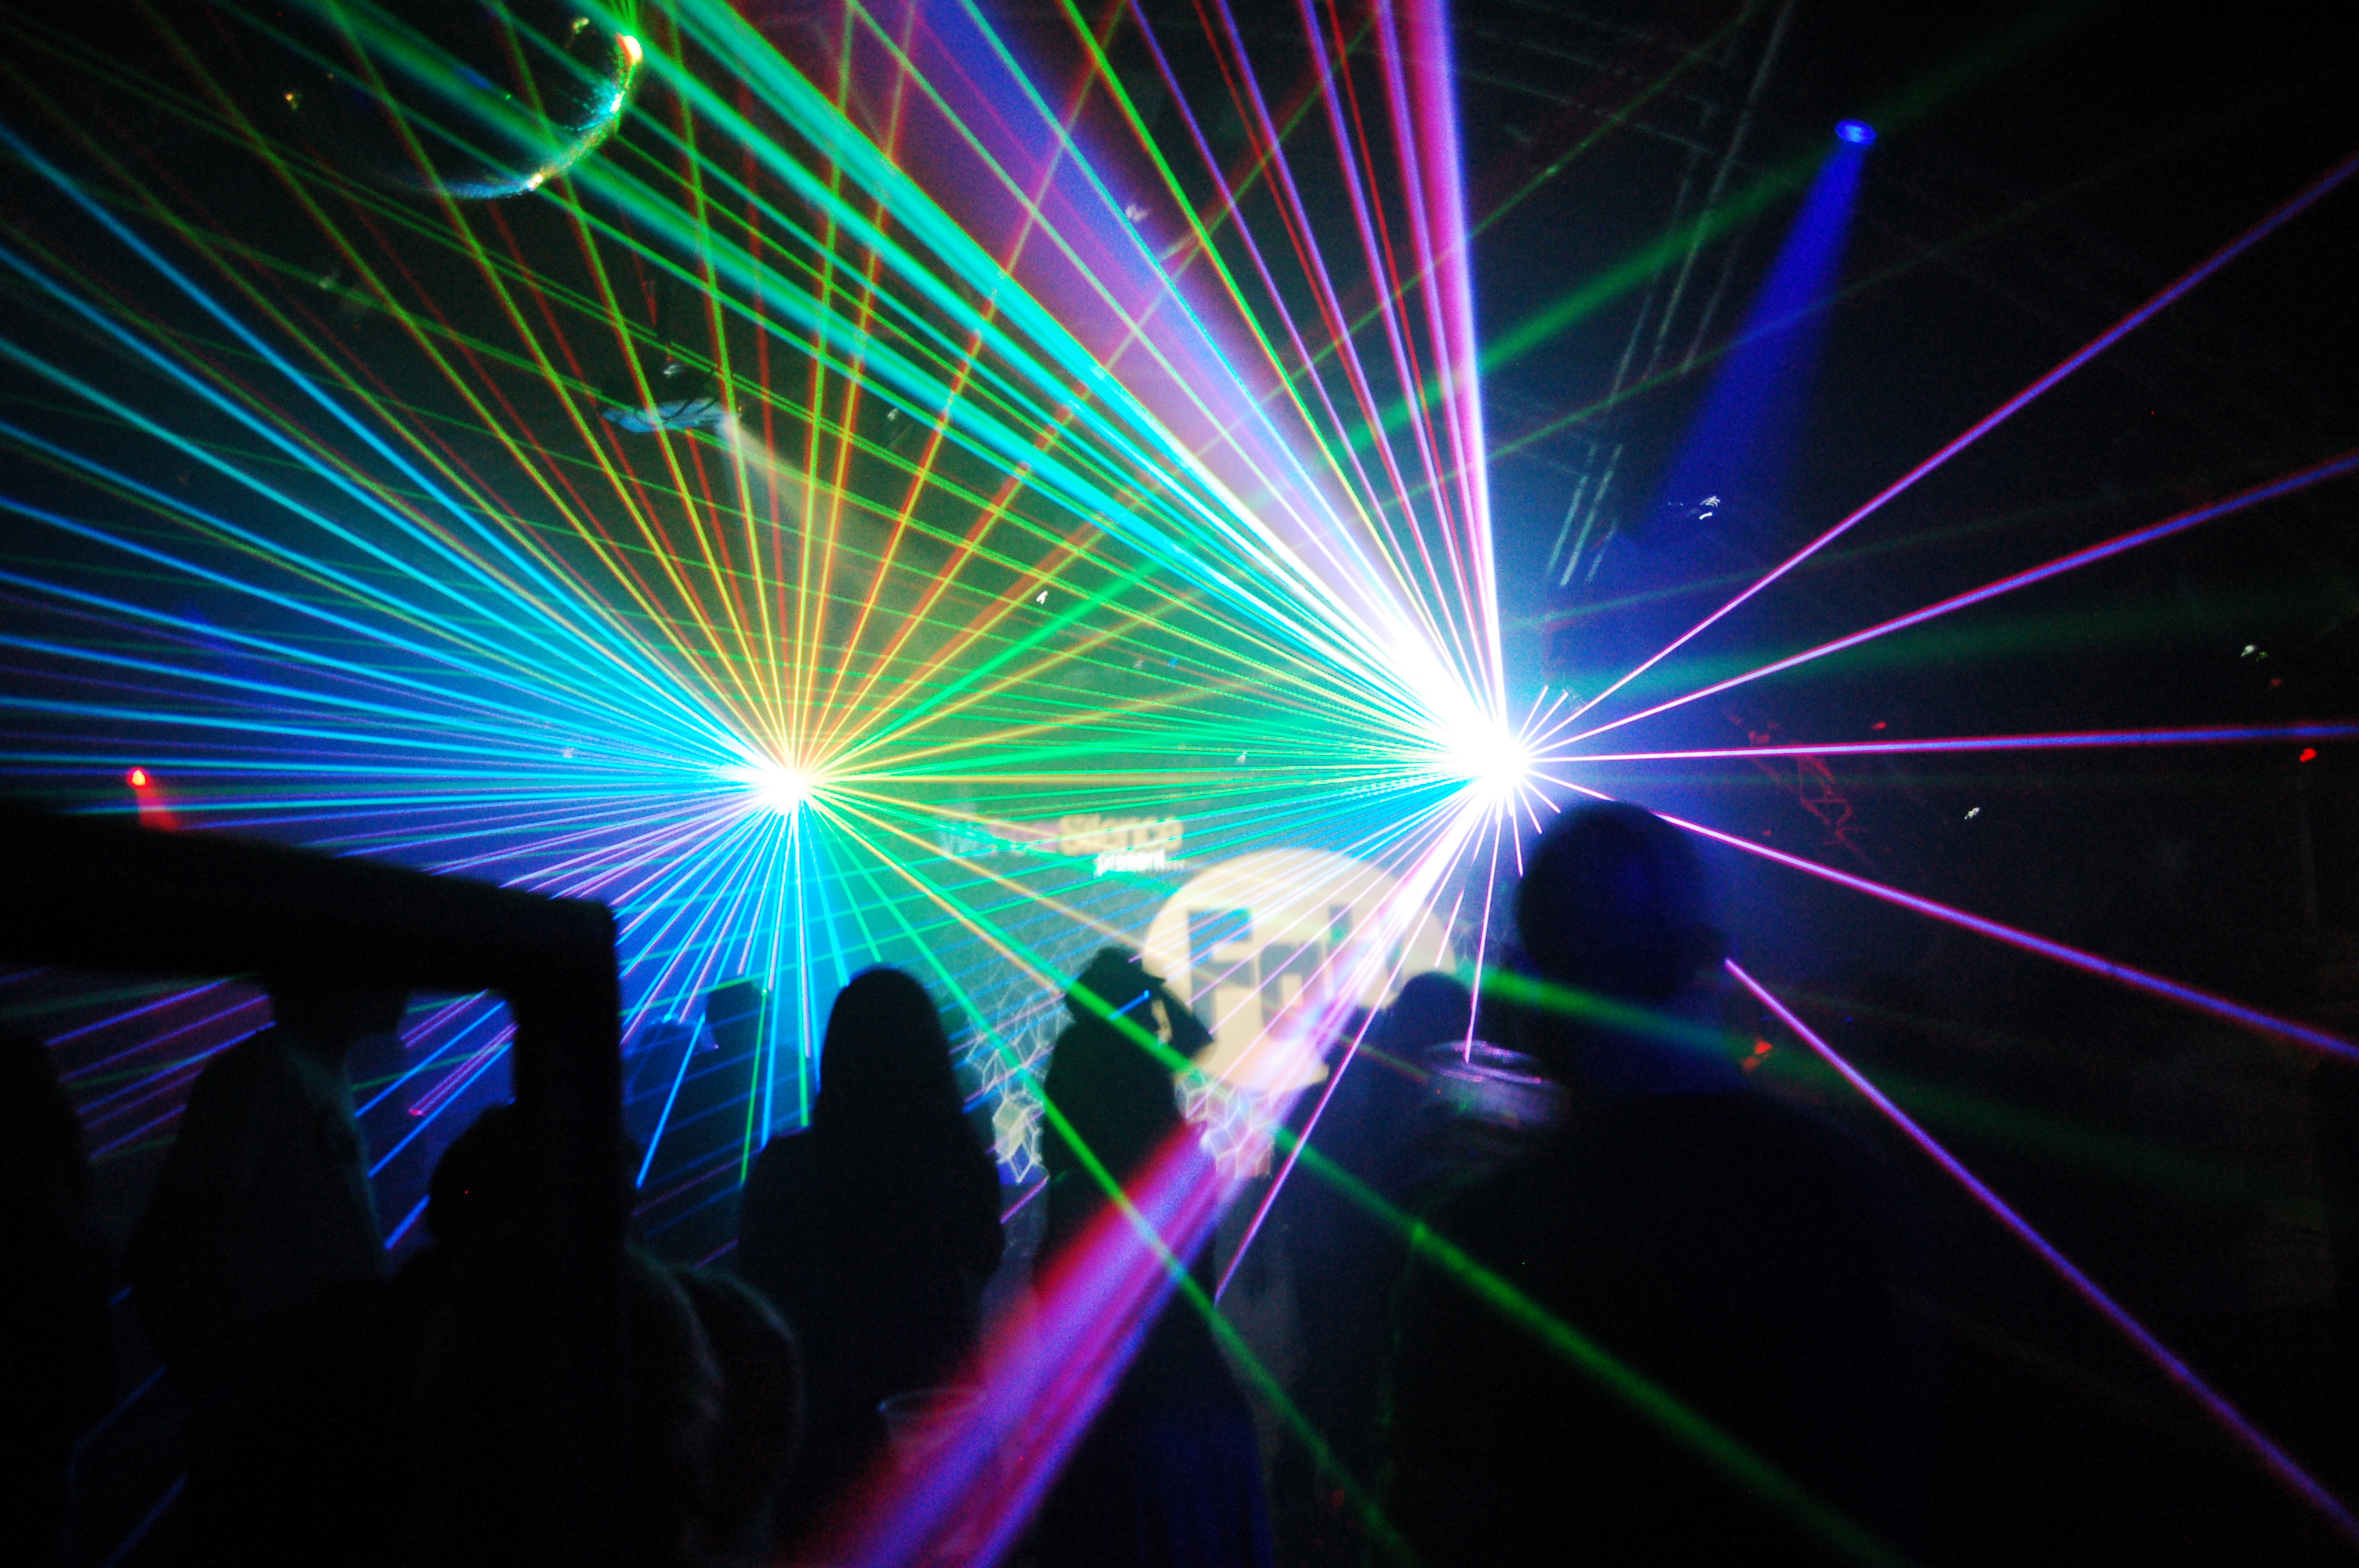 Laser Show in a Club 3719.37 Kb